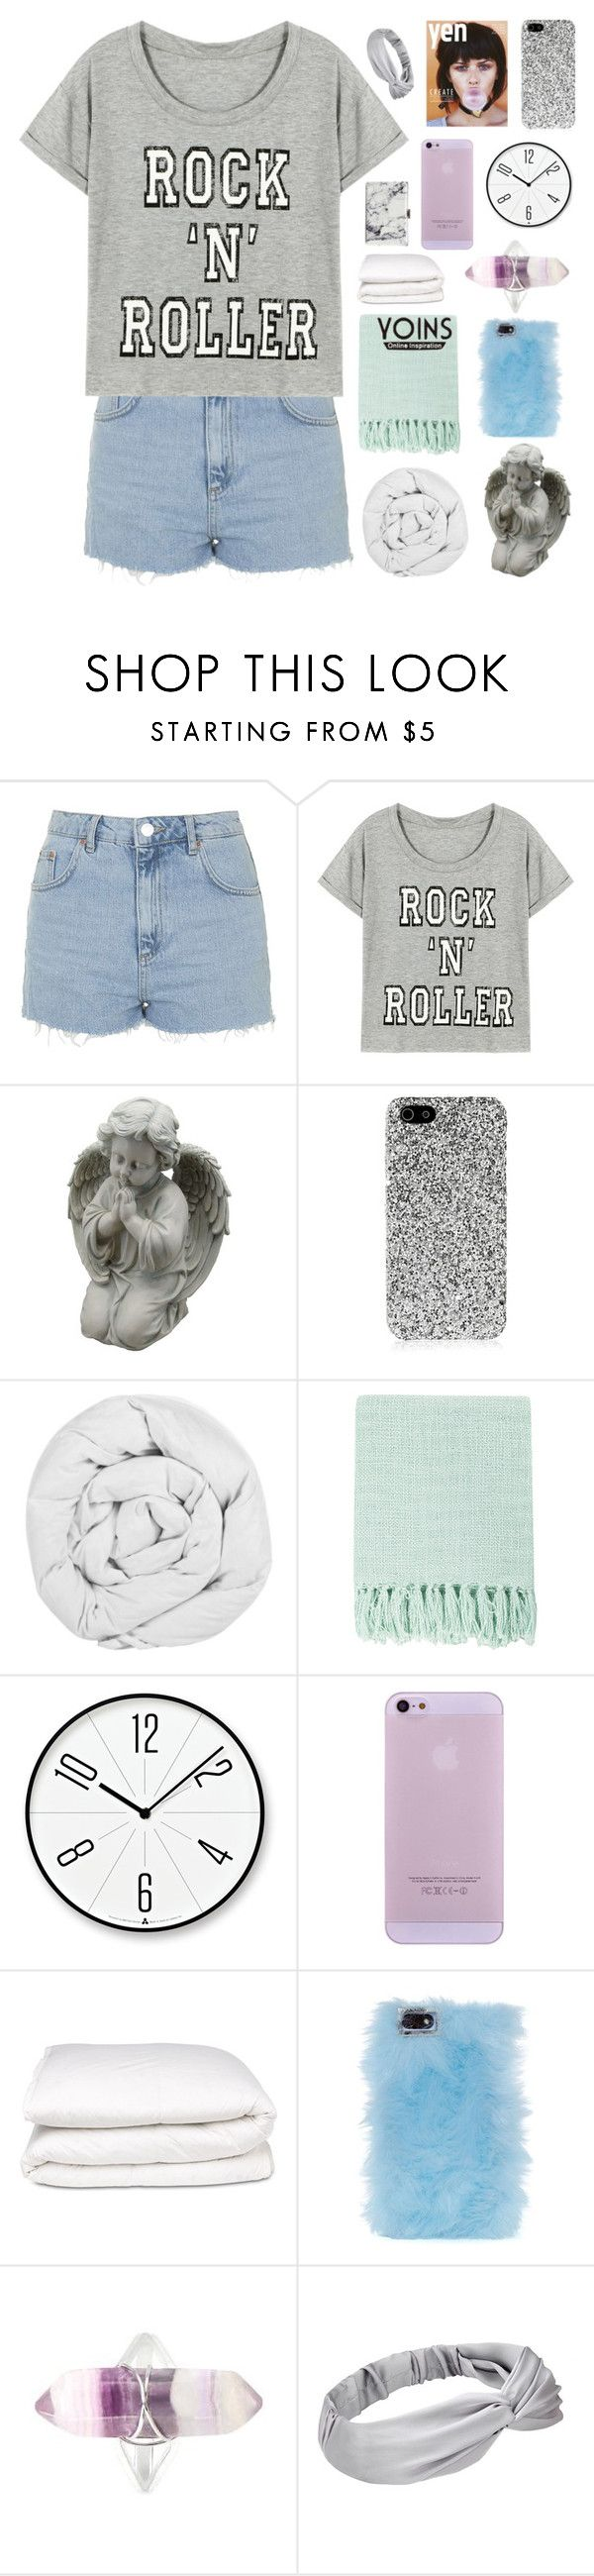 """""""it's logical ✧ yoins 23"""" by dont-go-to-sleep ❤ liked on Polyvore featuring Topshop, Yves Saint Laurent, The Fine Bedding Company, Surya, Lemnos, Selfridges, Skinnydip, Balenciaga, vintage and women's clothing"""